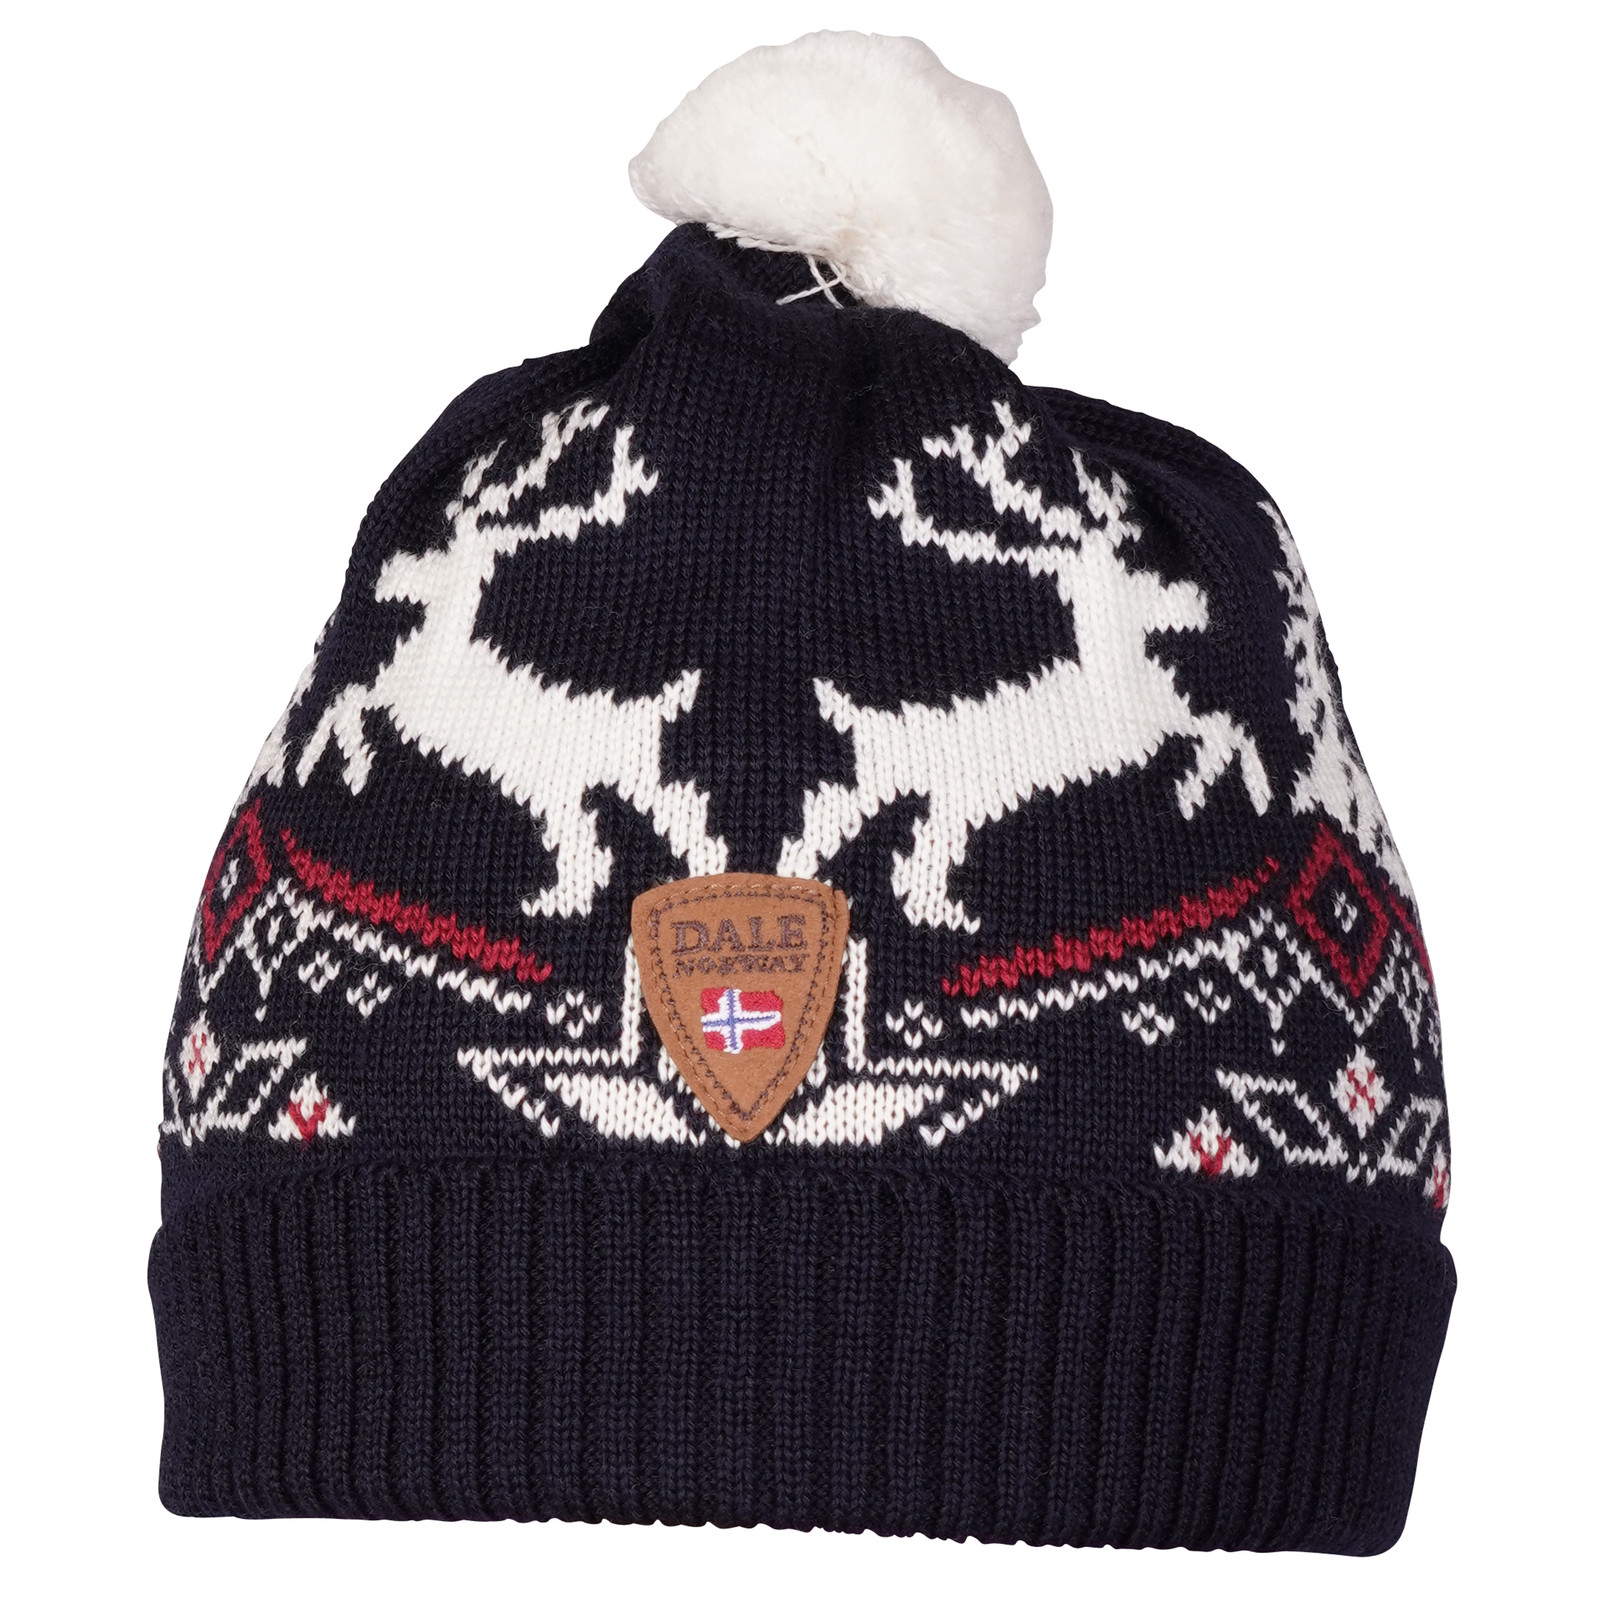 Dale of Norway Dale Christmas Kids' Hat - Navy/Off White/Raspberry 48301-C front view